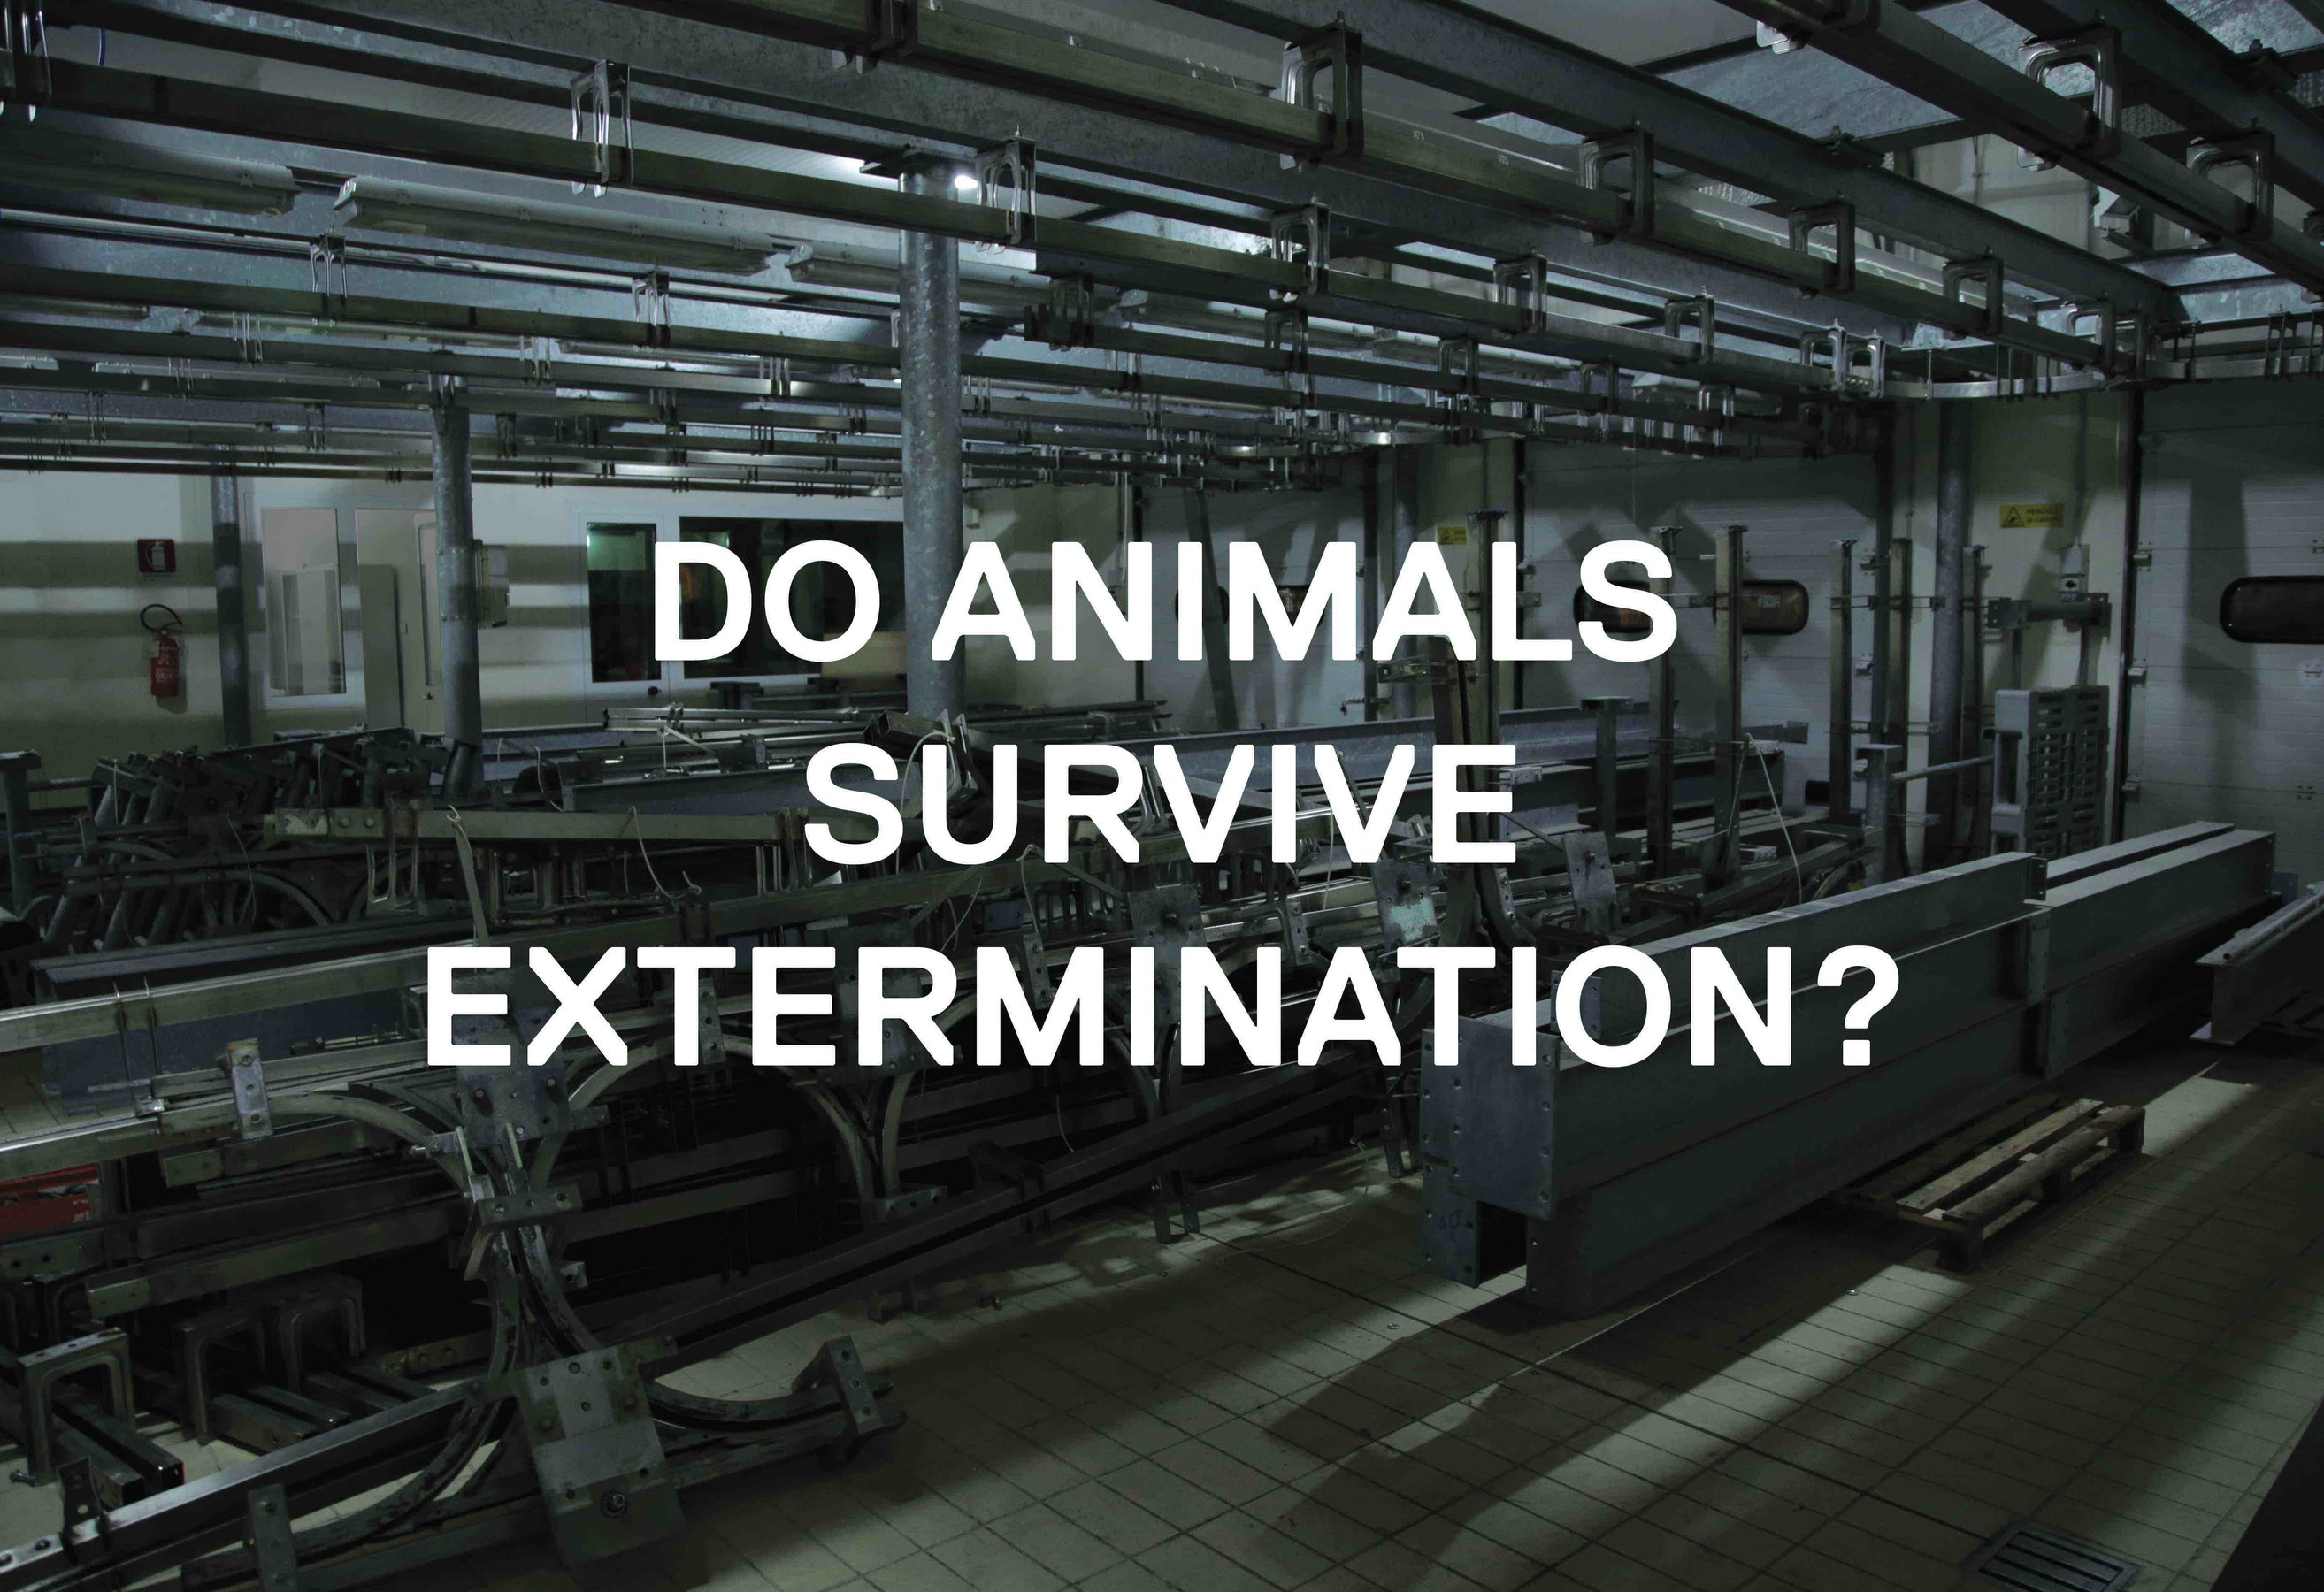 Do Animals...?